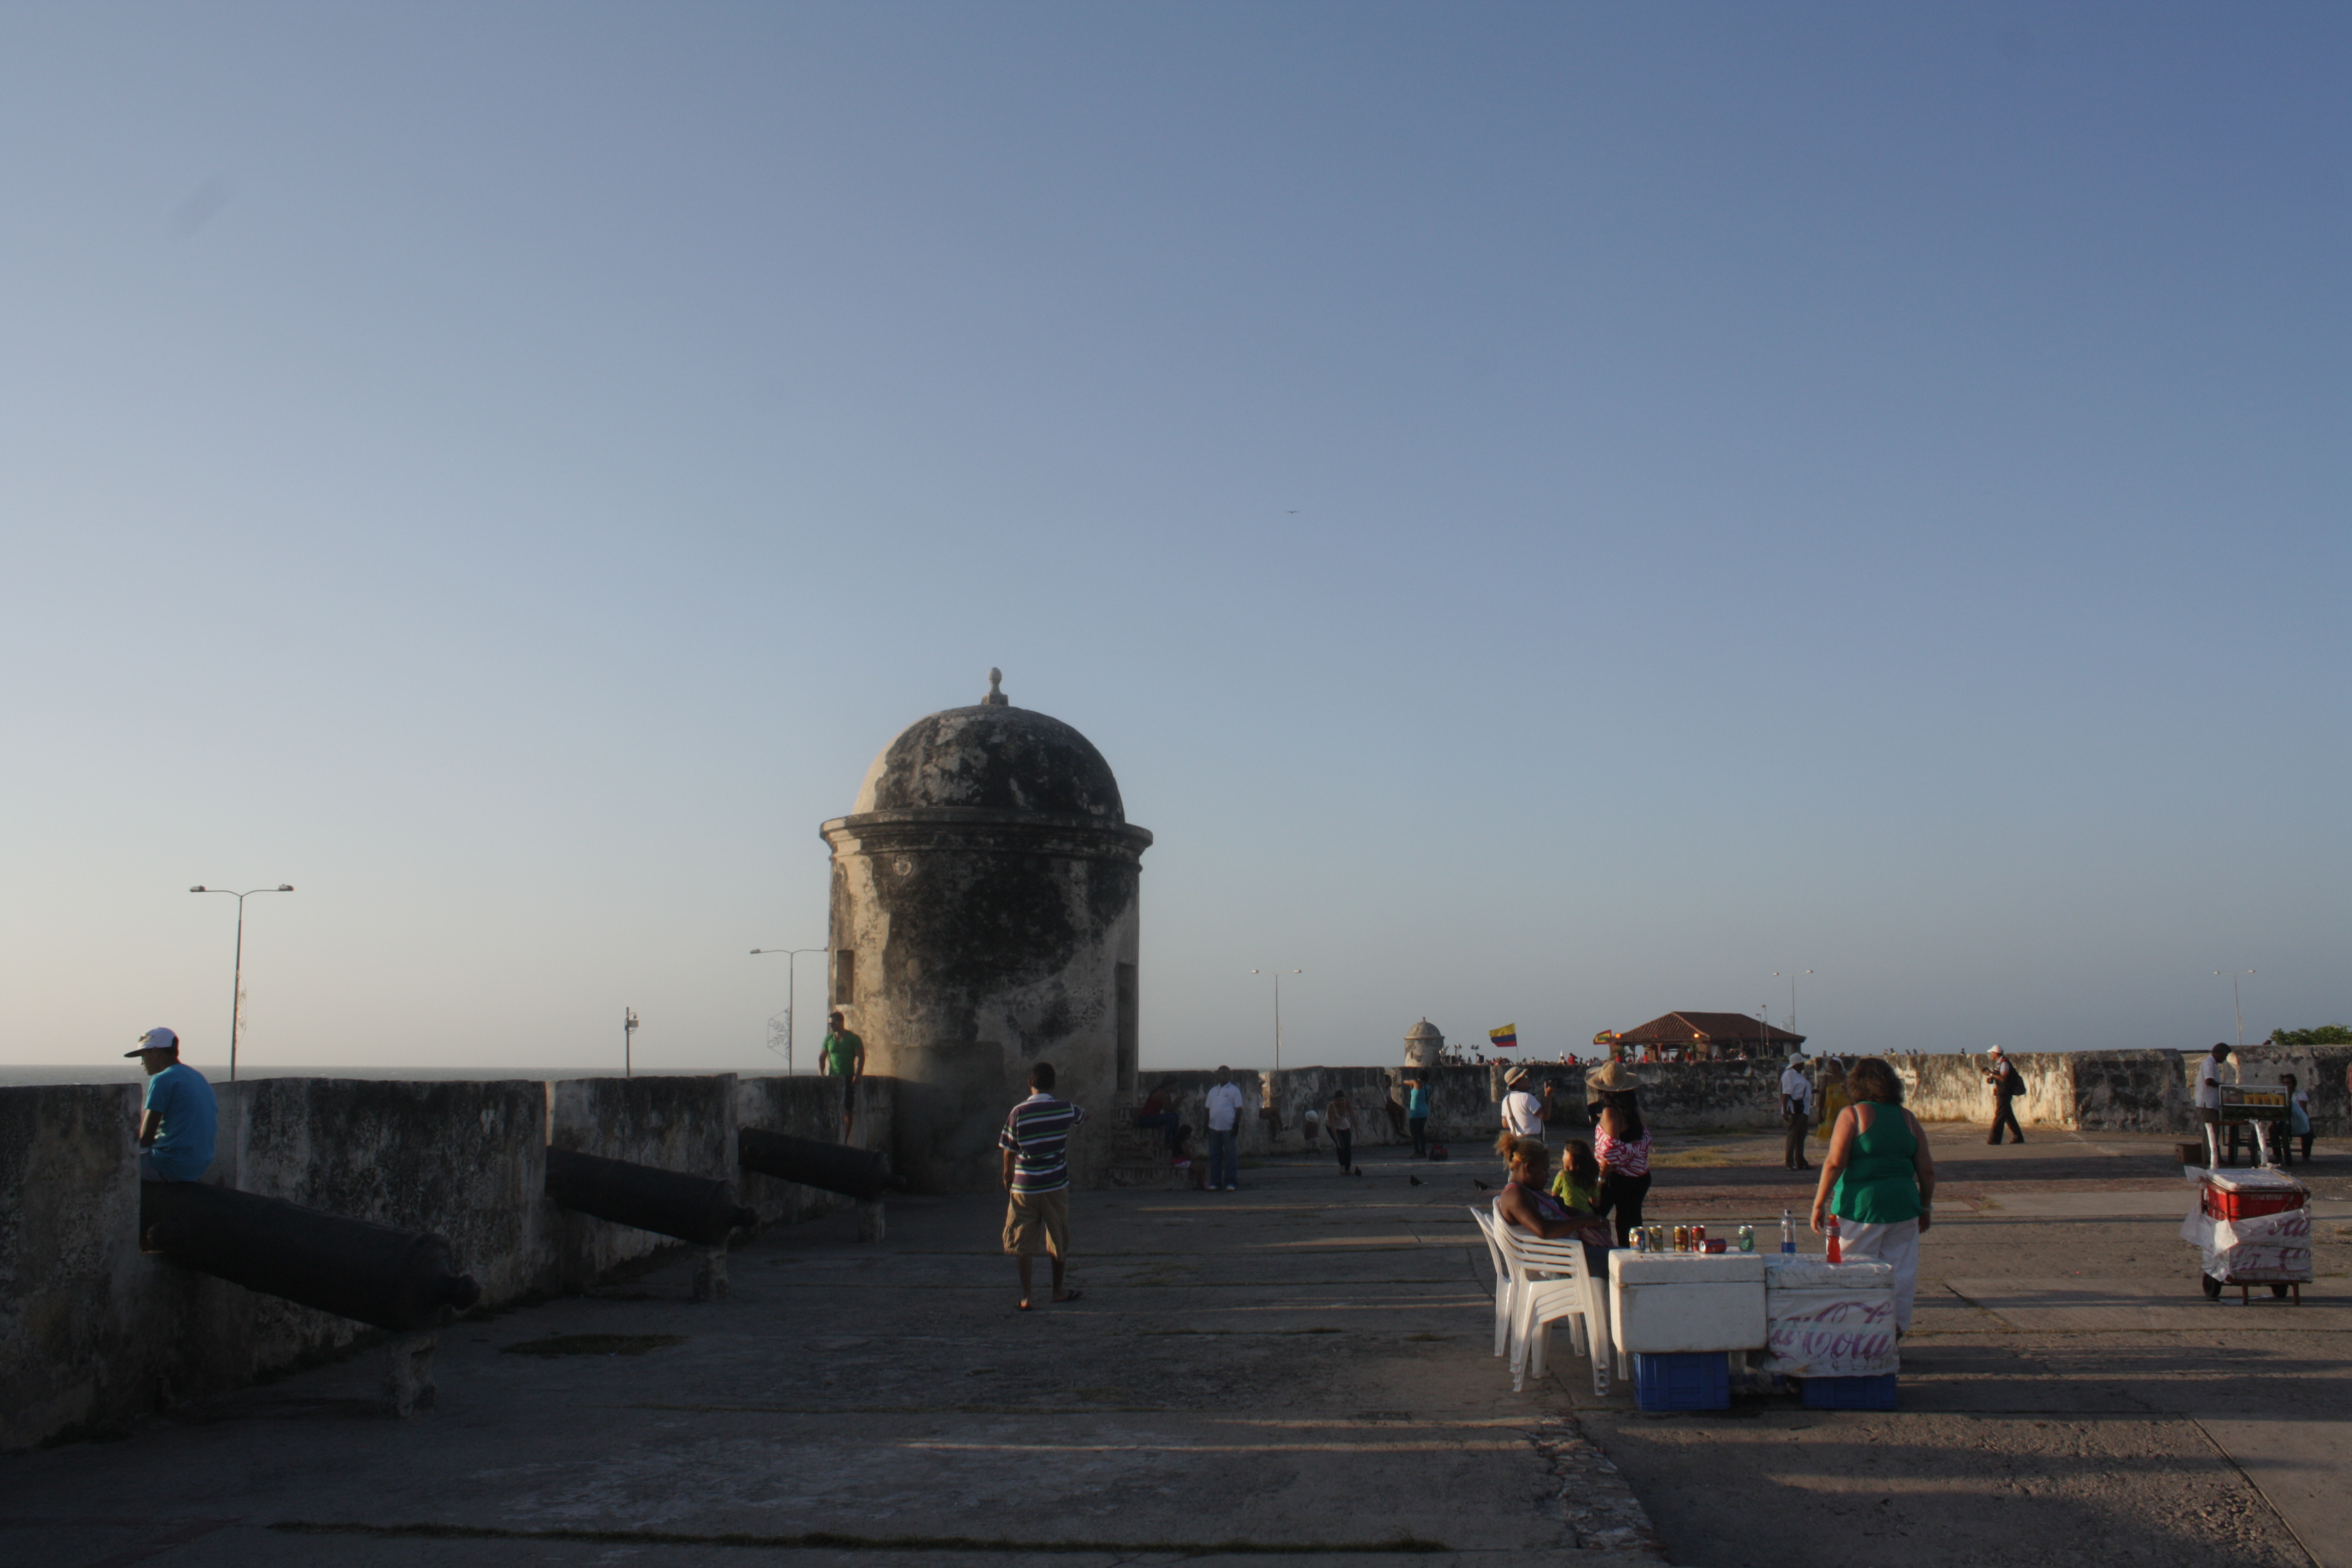 Old walls that used to protect Cartagena from pirates and attacks